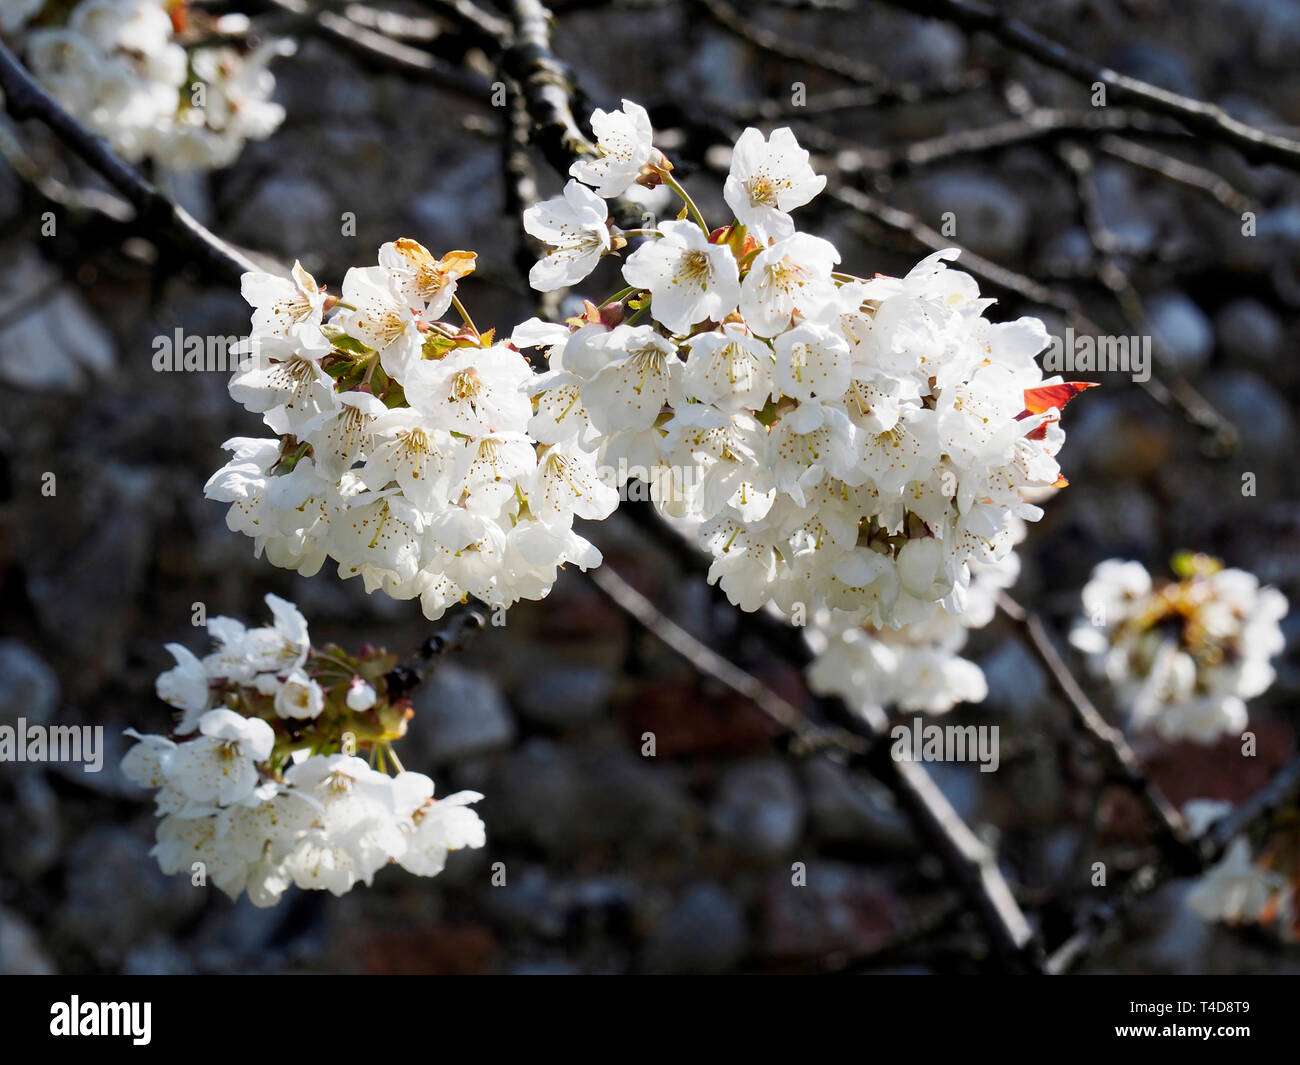 White apple blossom makes a fine display on an April day. Stock Photo